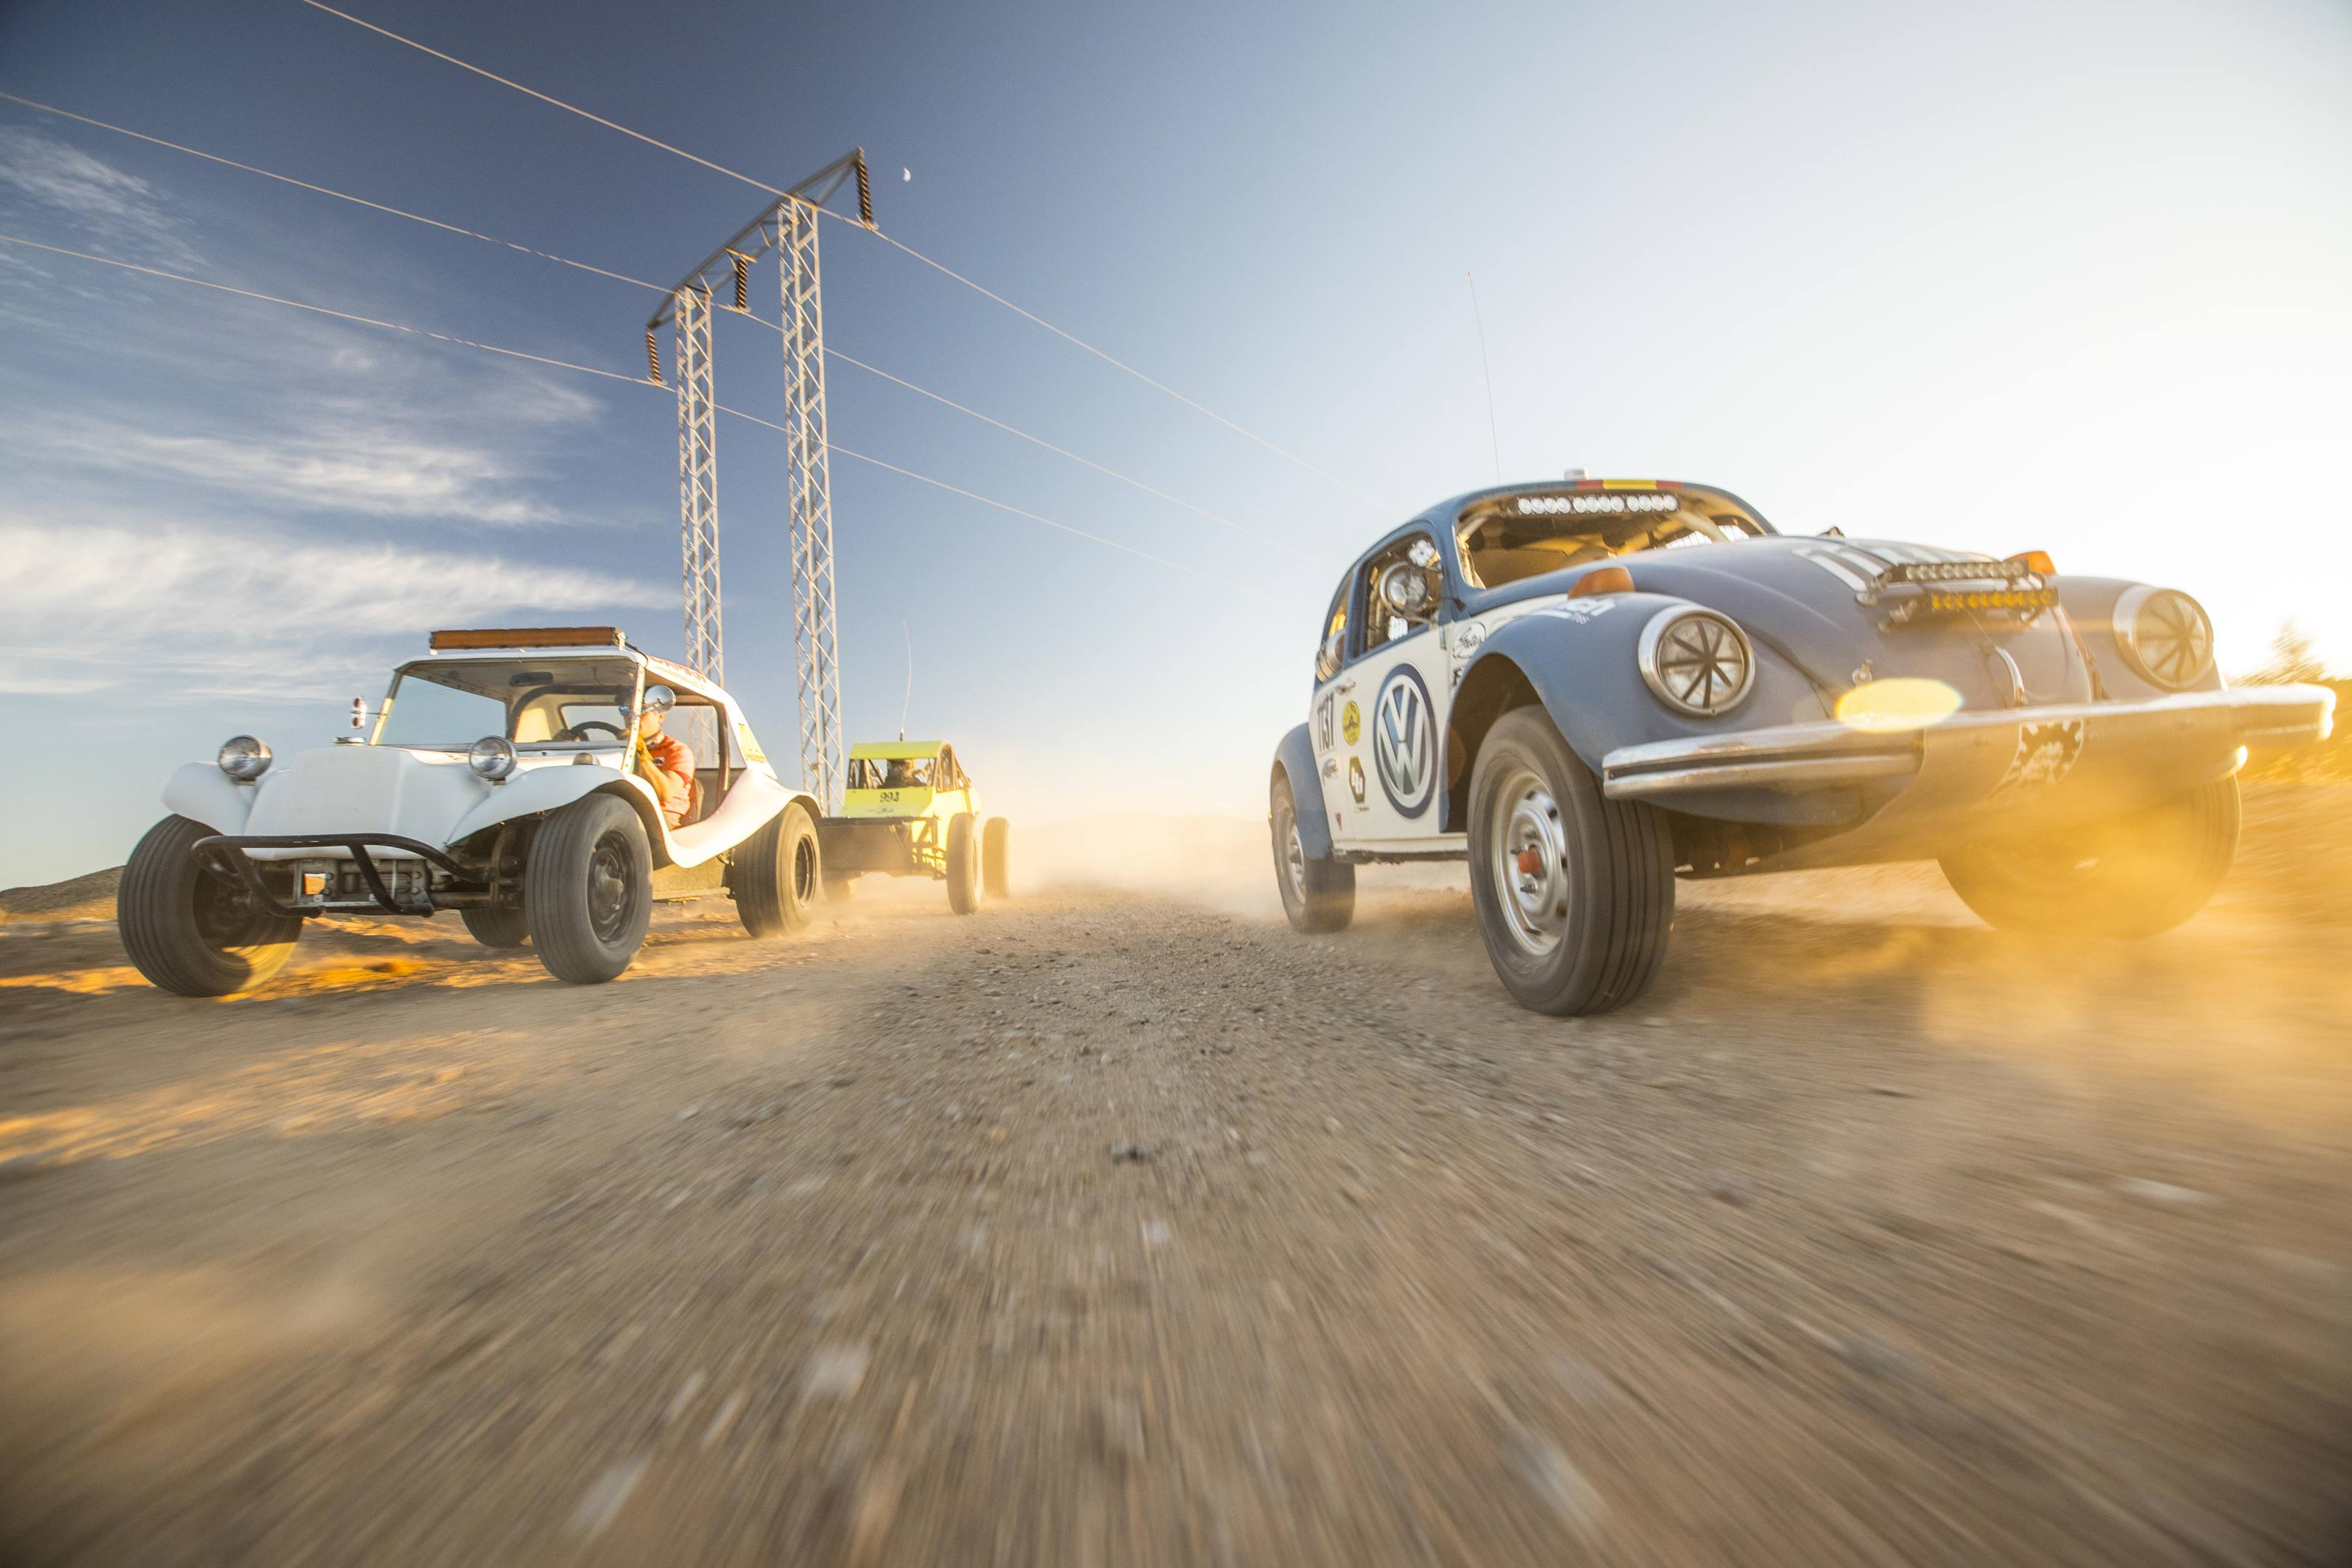 Volkswagen was there when Baja racing was born, and the cars are still at it